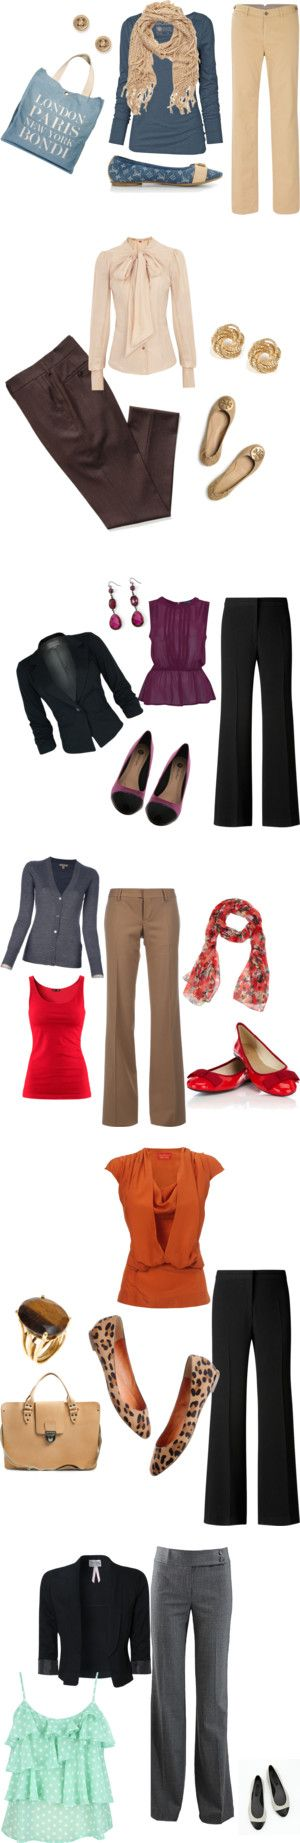 I like all of these! Practical, can wear mix and match for everyday wear  for work